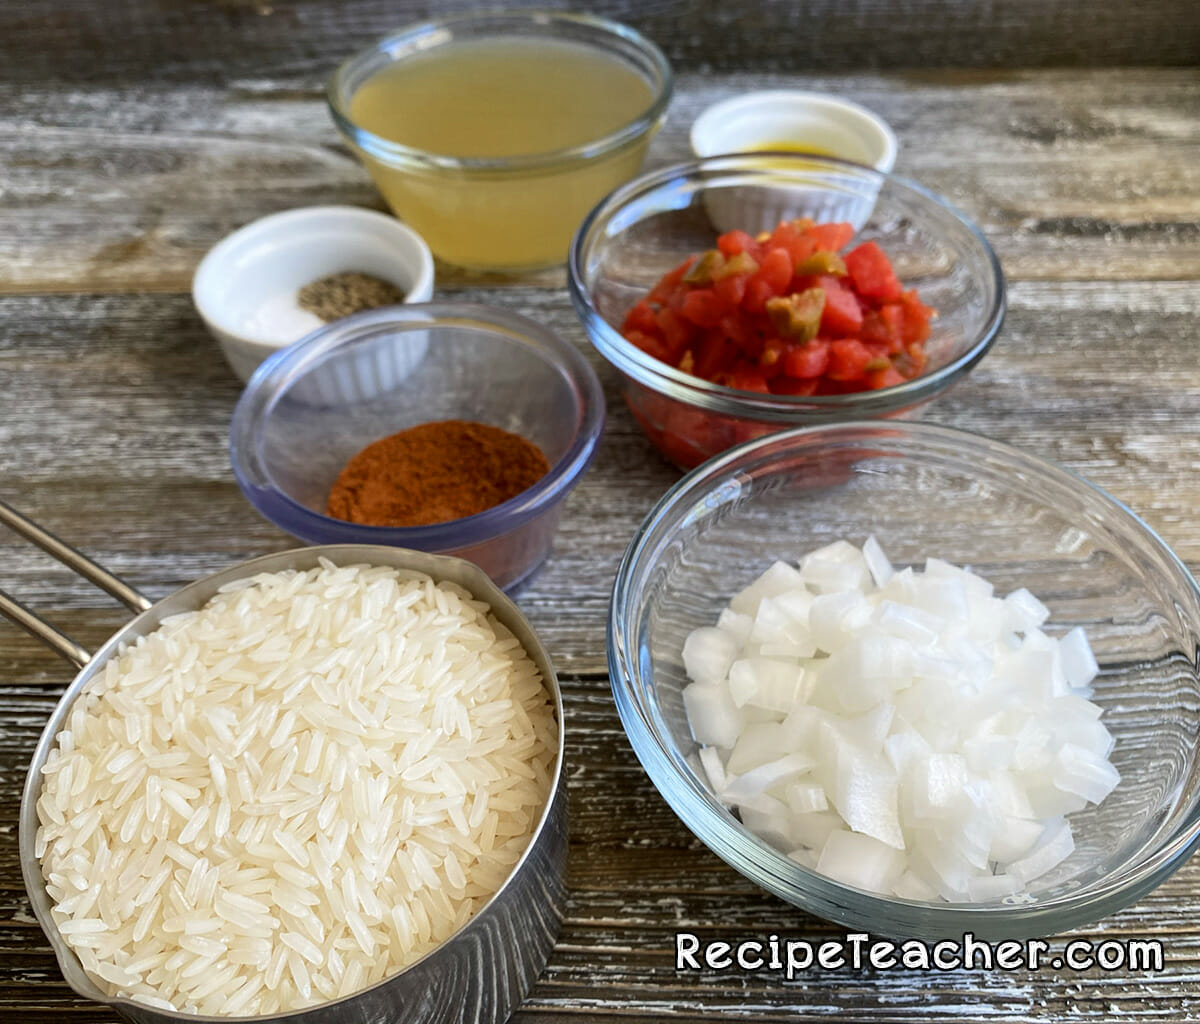 All the ingredients for Instant Pot Spanish rice.